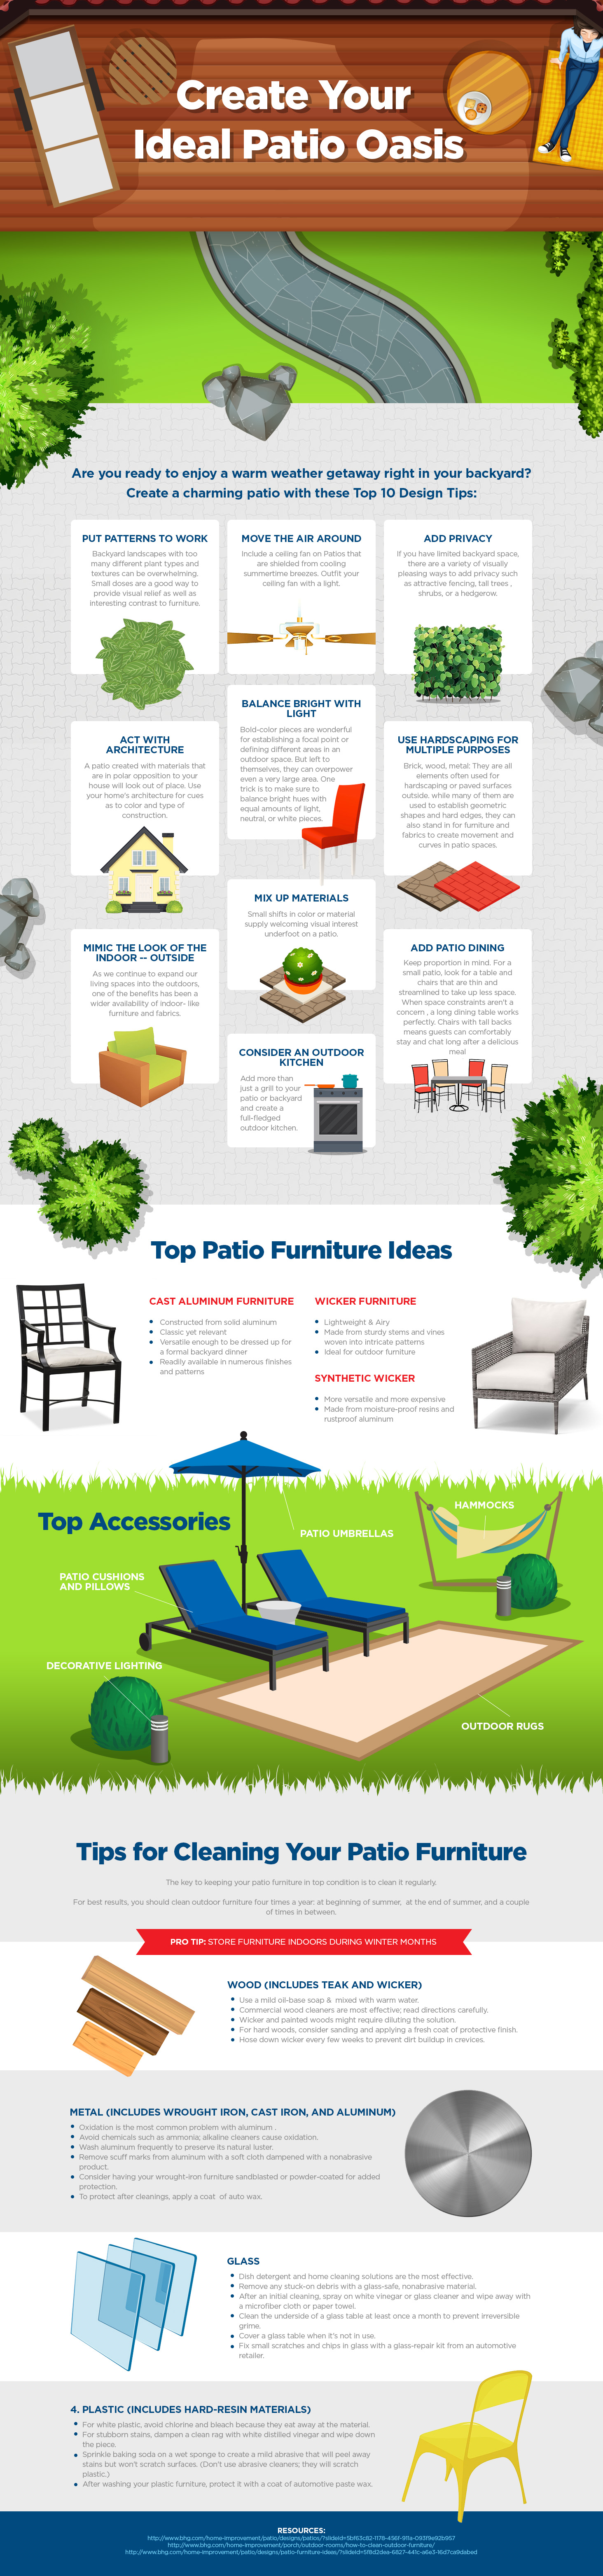 Create Your Ideal Patio Oasis Infographic